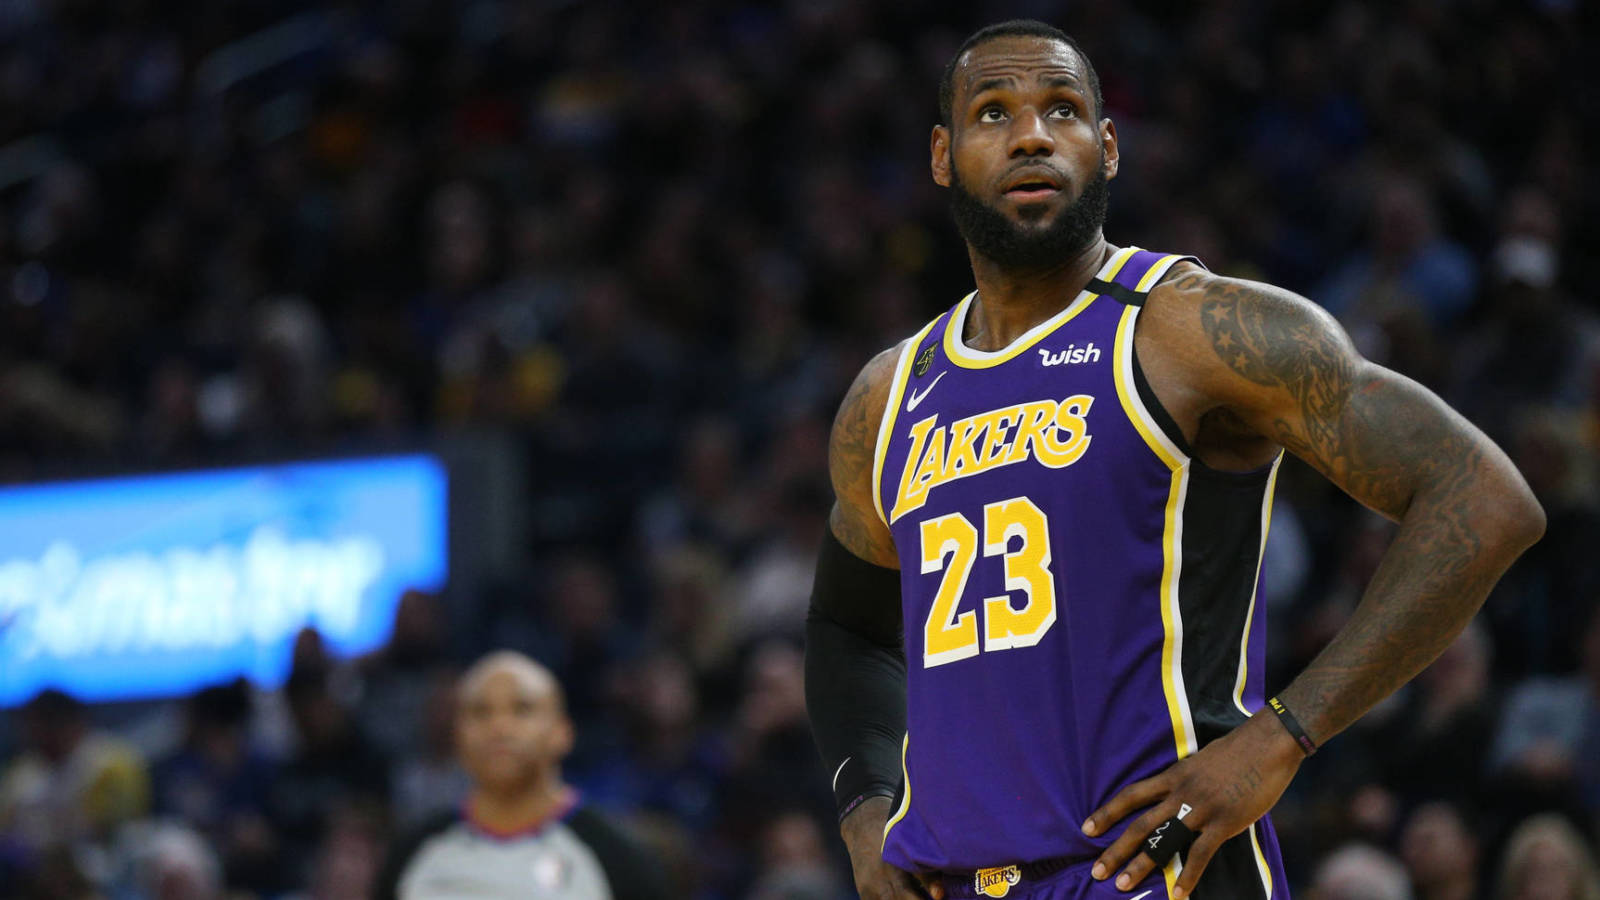 LeBron James: 'A lot of factors' will play role in Olympics decision